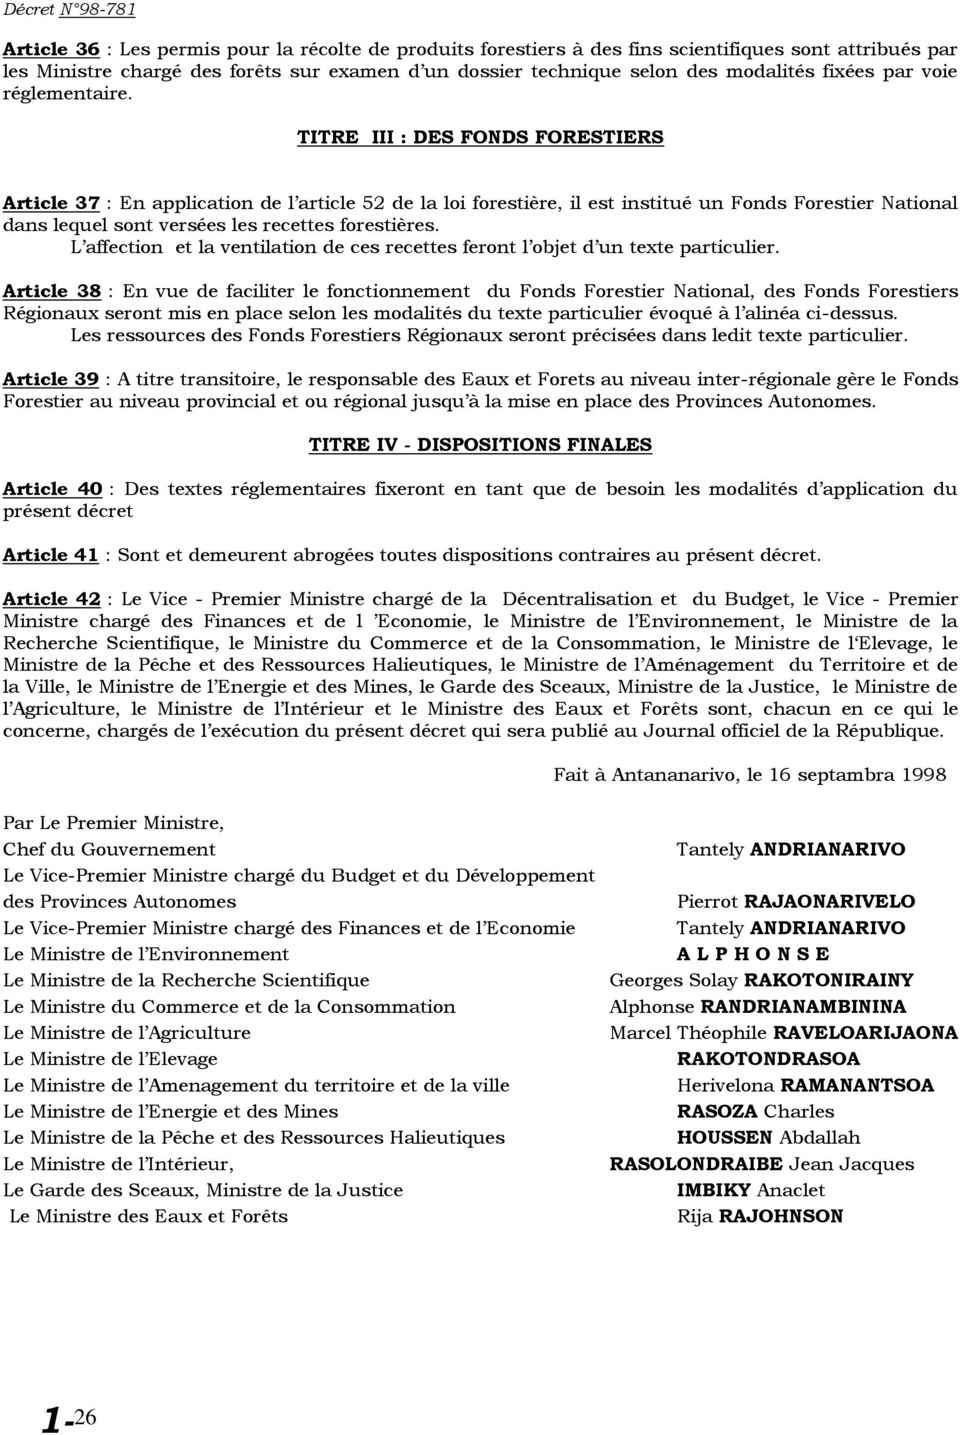 TITRE III : DES FONDS FORESTIERS Article 37 : En application de l article 52 de la loi forestière, il est institué un Fonds Forestier National dans lequel sont versées les recettes forestières.